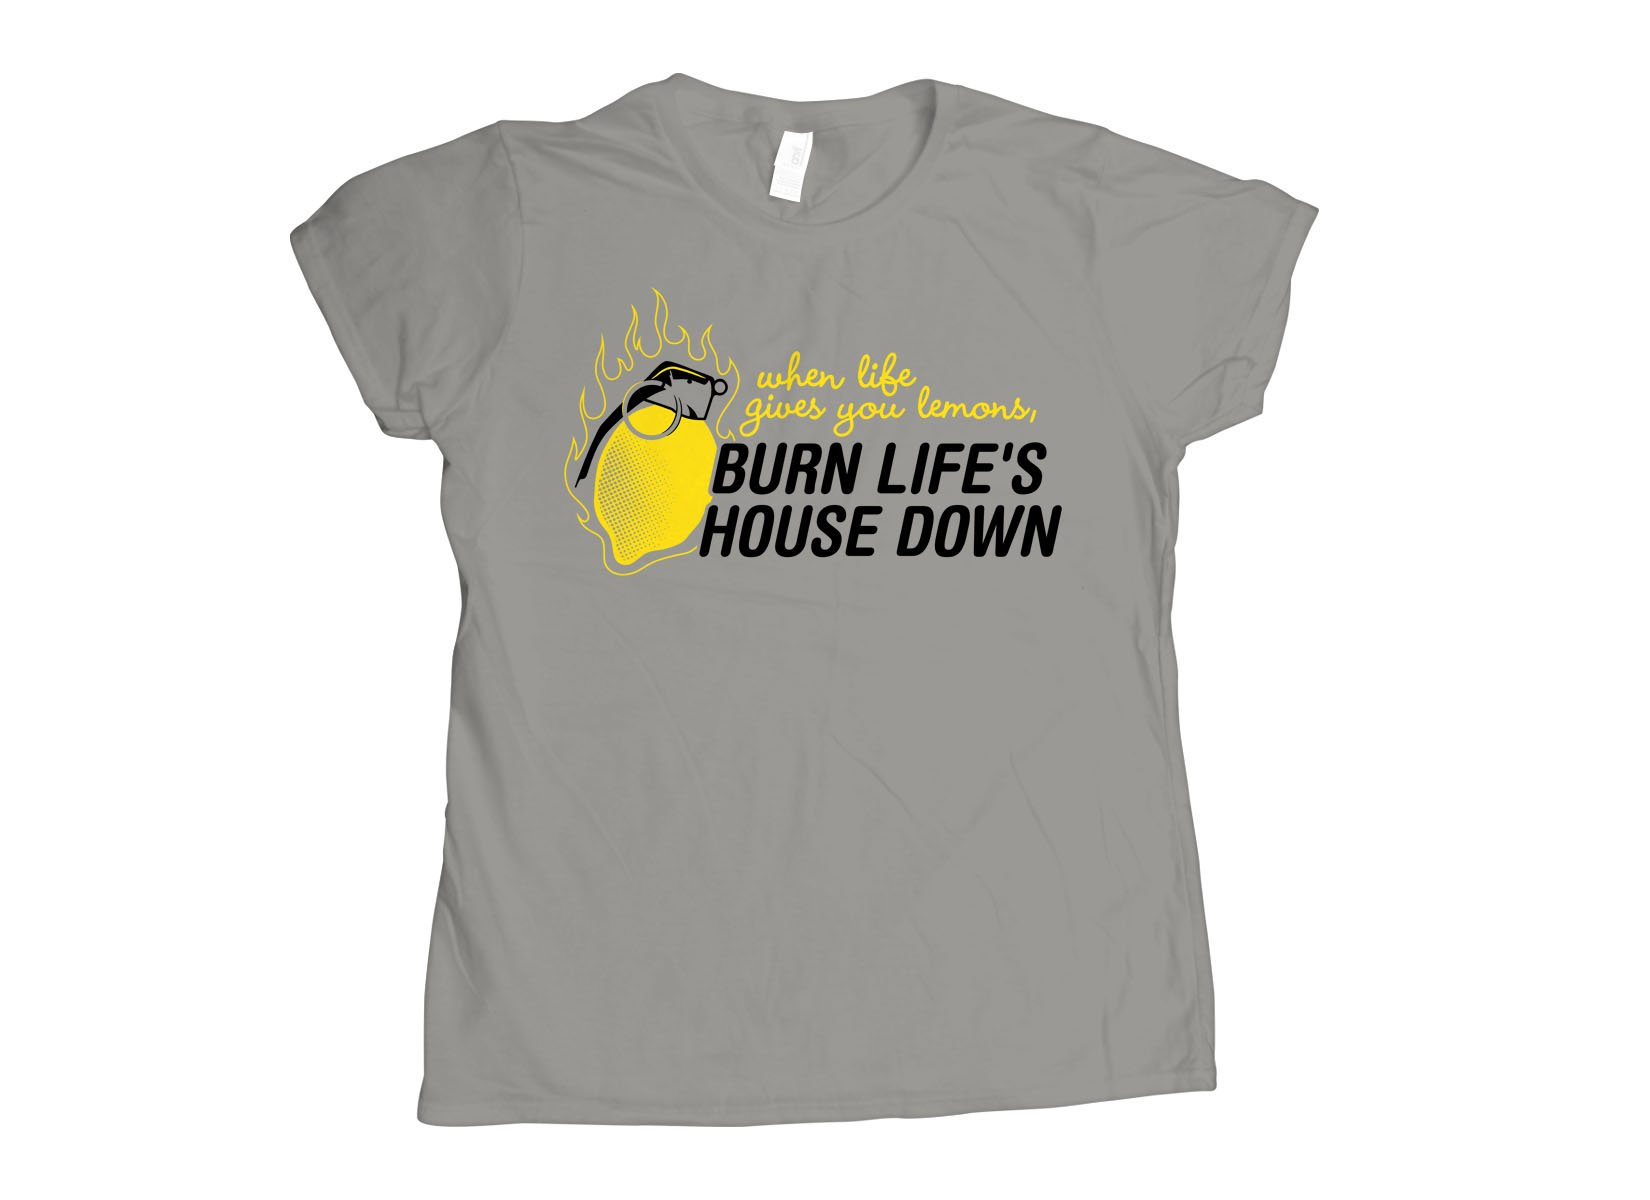 Burn Life's House Down on Womens T-Shirt